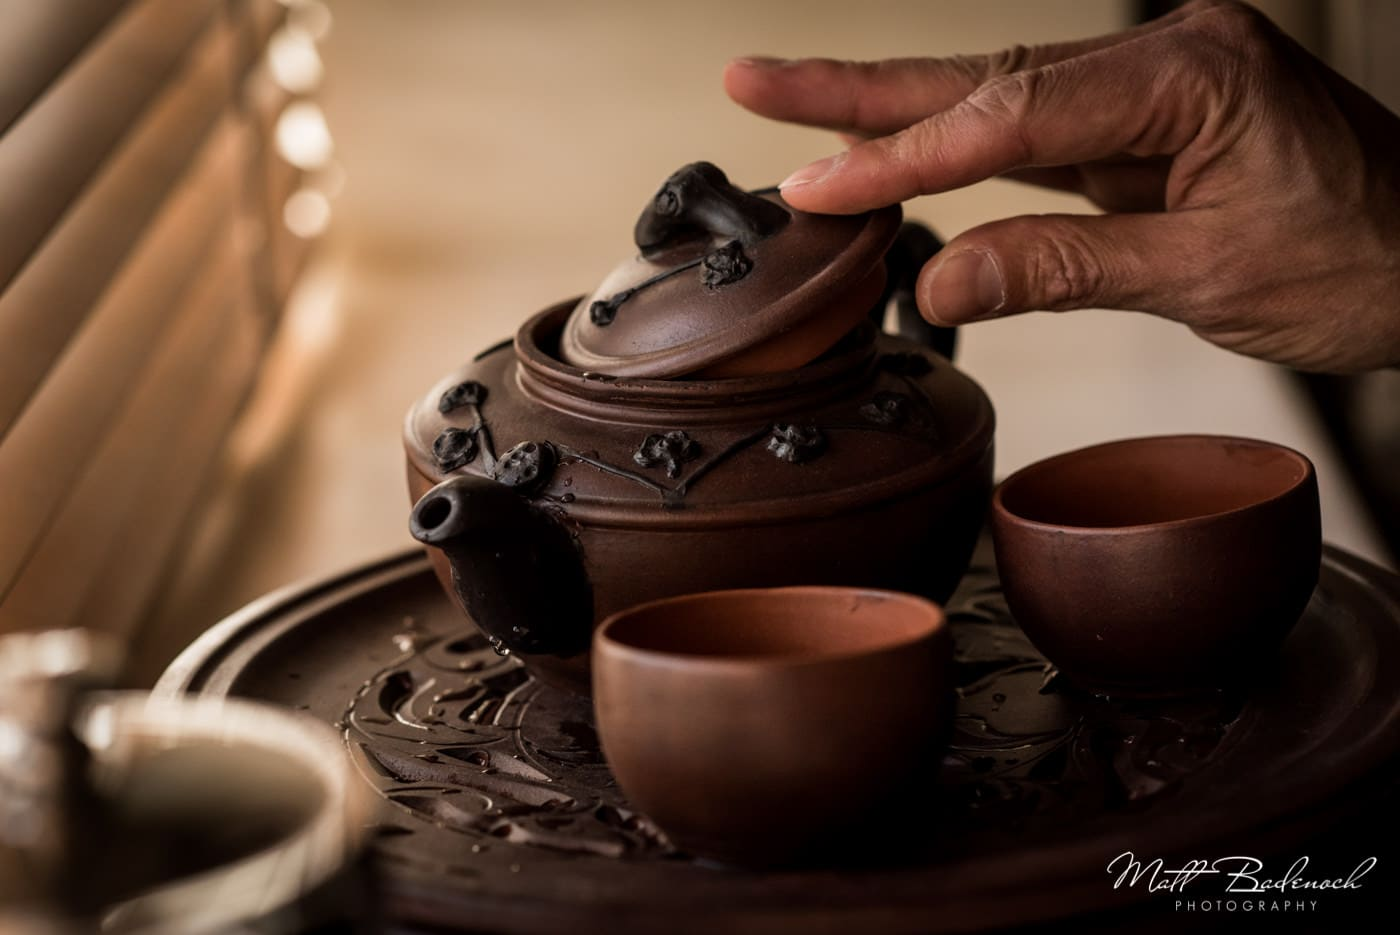 Chinese tea ceremony at Leeds Castle